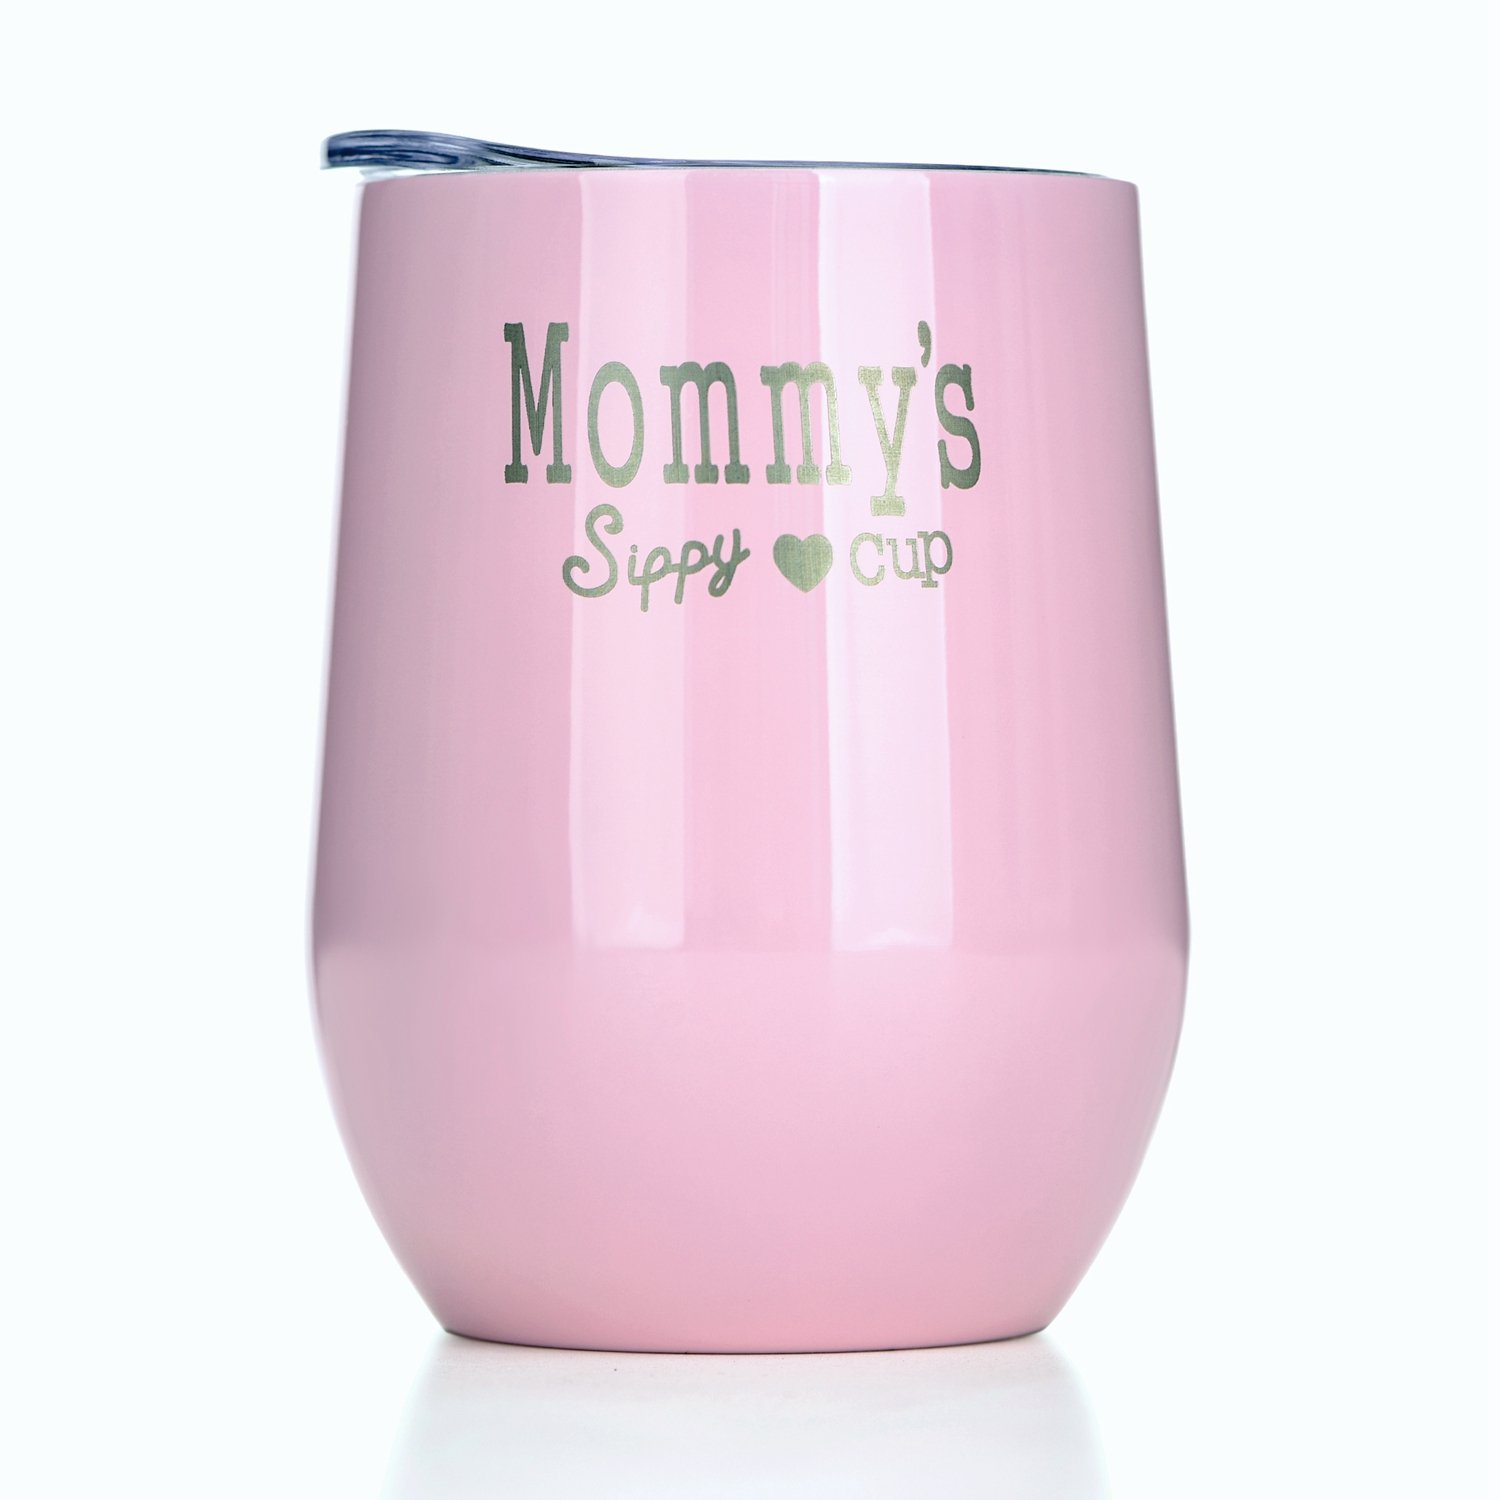 Amzyt Mommy's Sippy Cup Personalized Women Travel Mug Made Of Double Wall Stainless Steel Perfect For Martini Beer Water Milk Drinks 12 Oz Pink